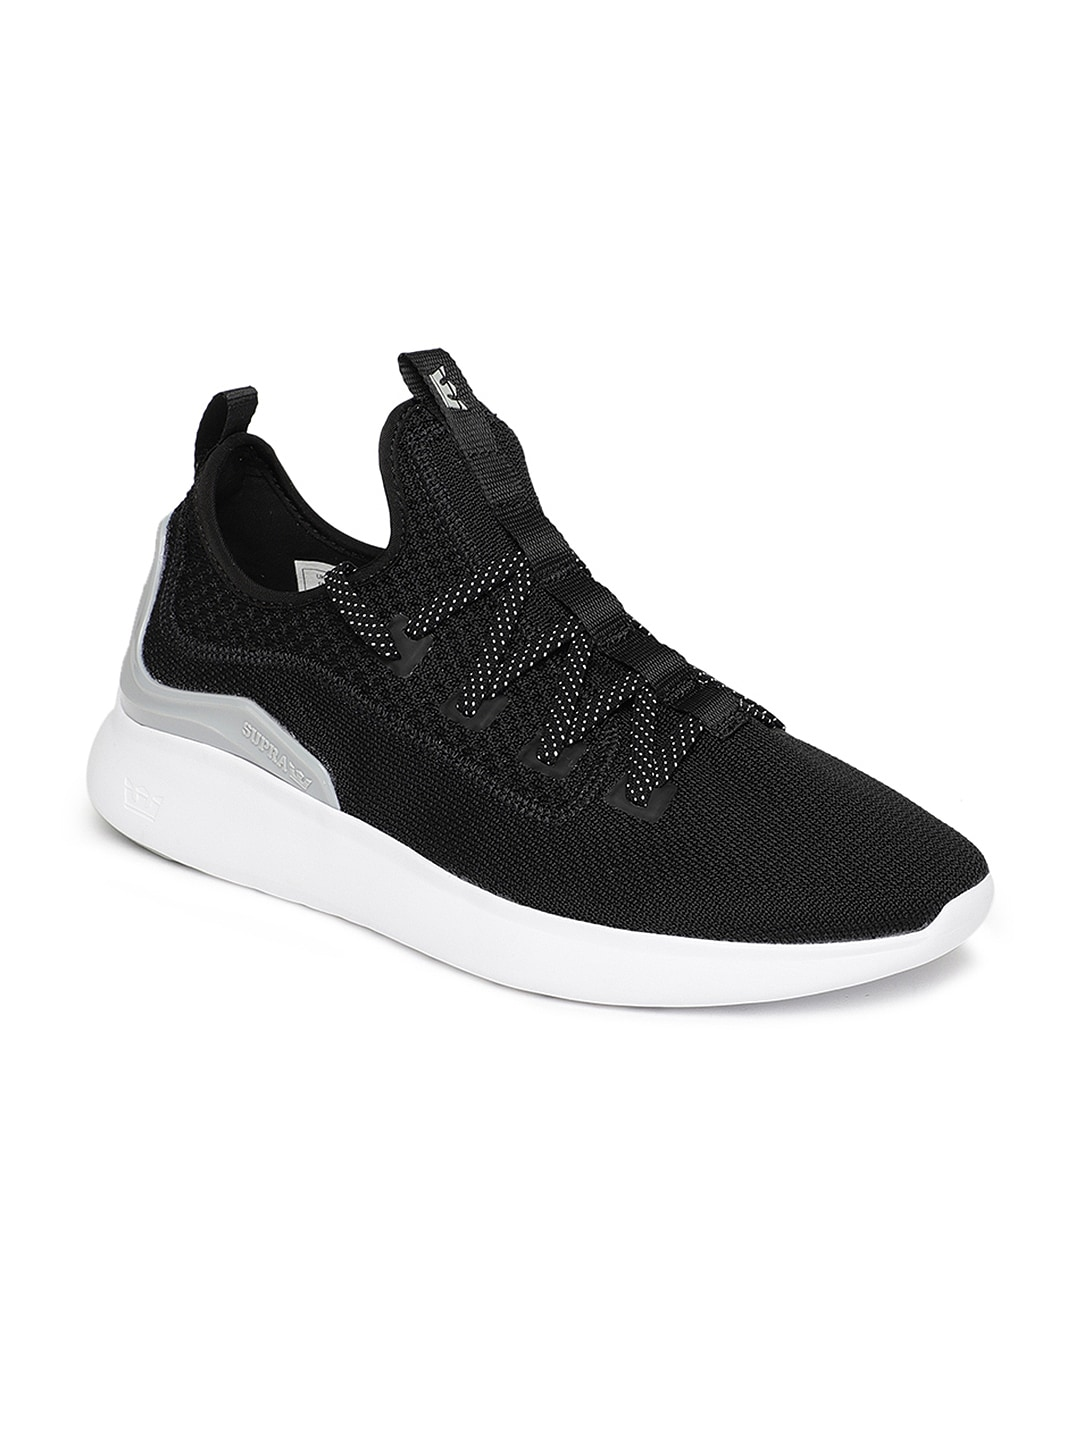 239300274149e0 Supra Shoes - Buy Supra Shoes   Sneakers Online in India